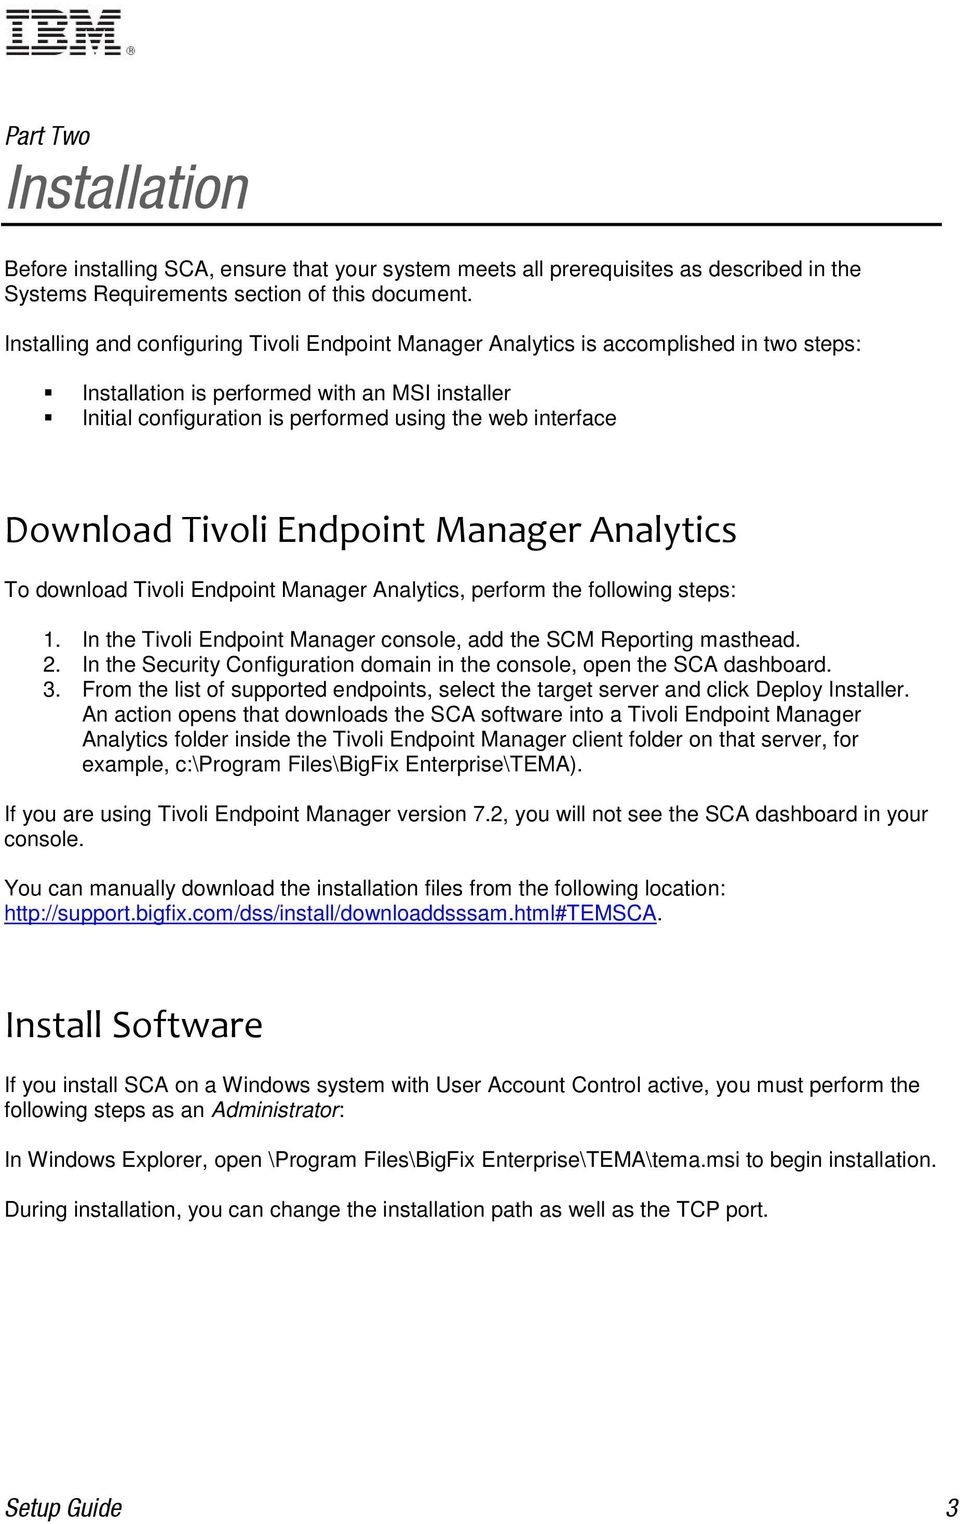 Download Tivoli Endpoint Manager Analytics To download Tivoli Endpoint Manager Analytics, perform the following steps: 1. In the Tivoli Endpoint Manager console, add the SCM Reporting masthead. 2.